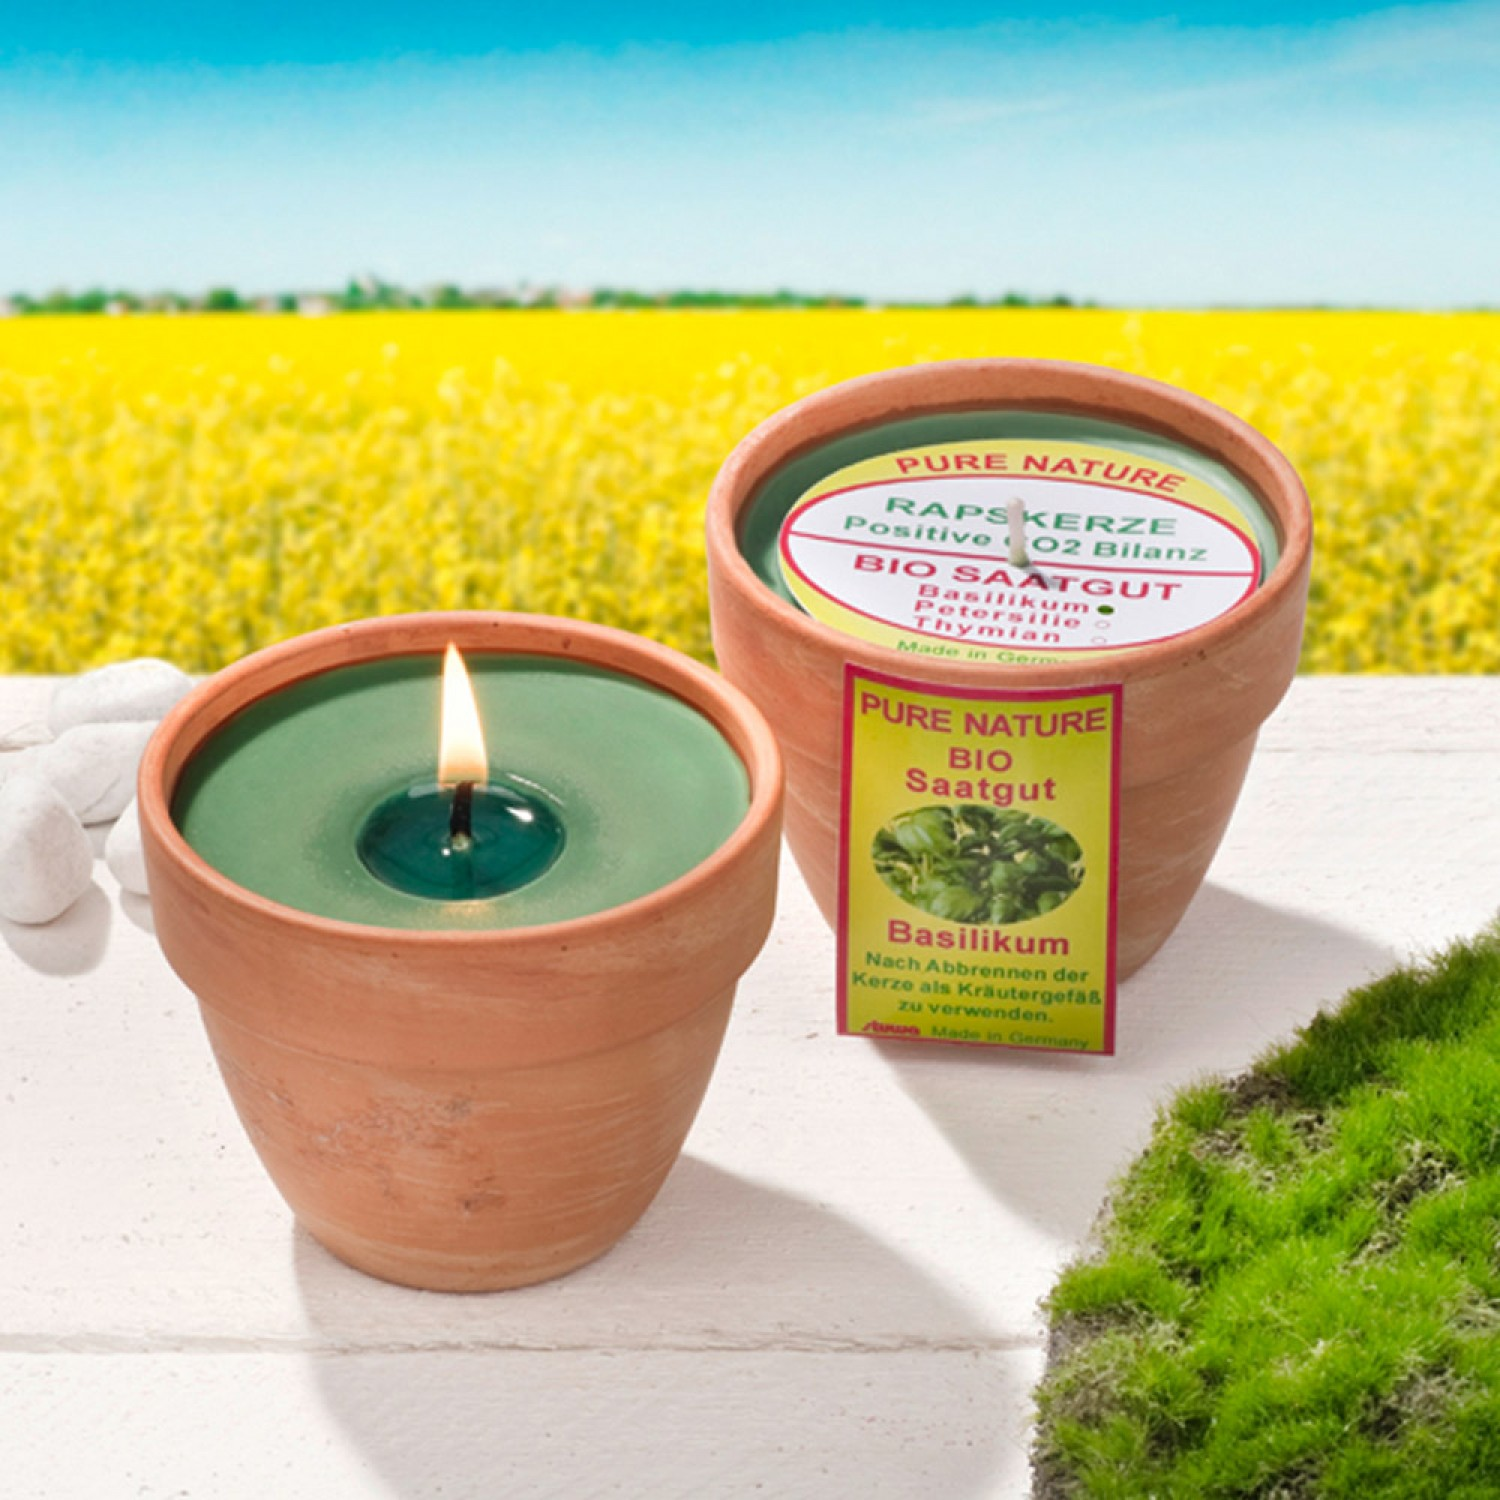 Rape Wax Candles with organic seeds in Terracotta Pot | stuwa